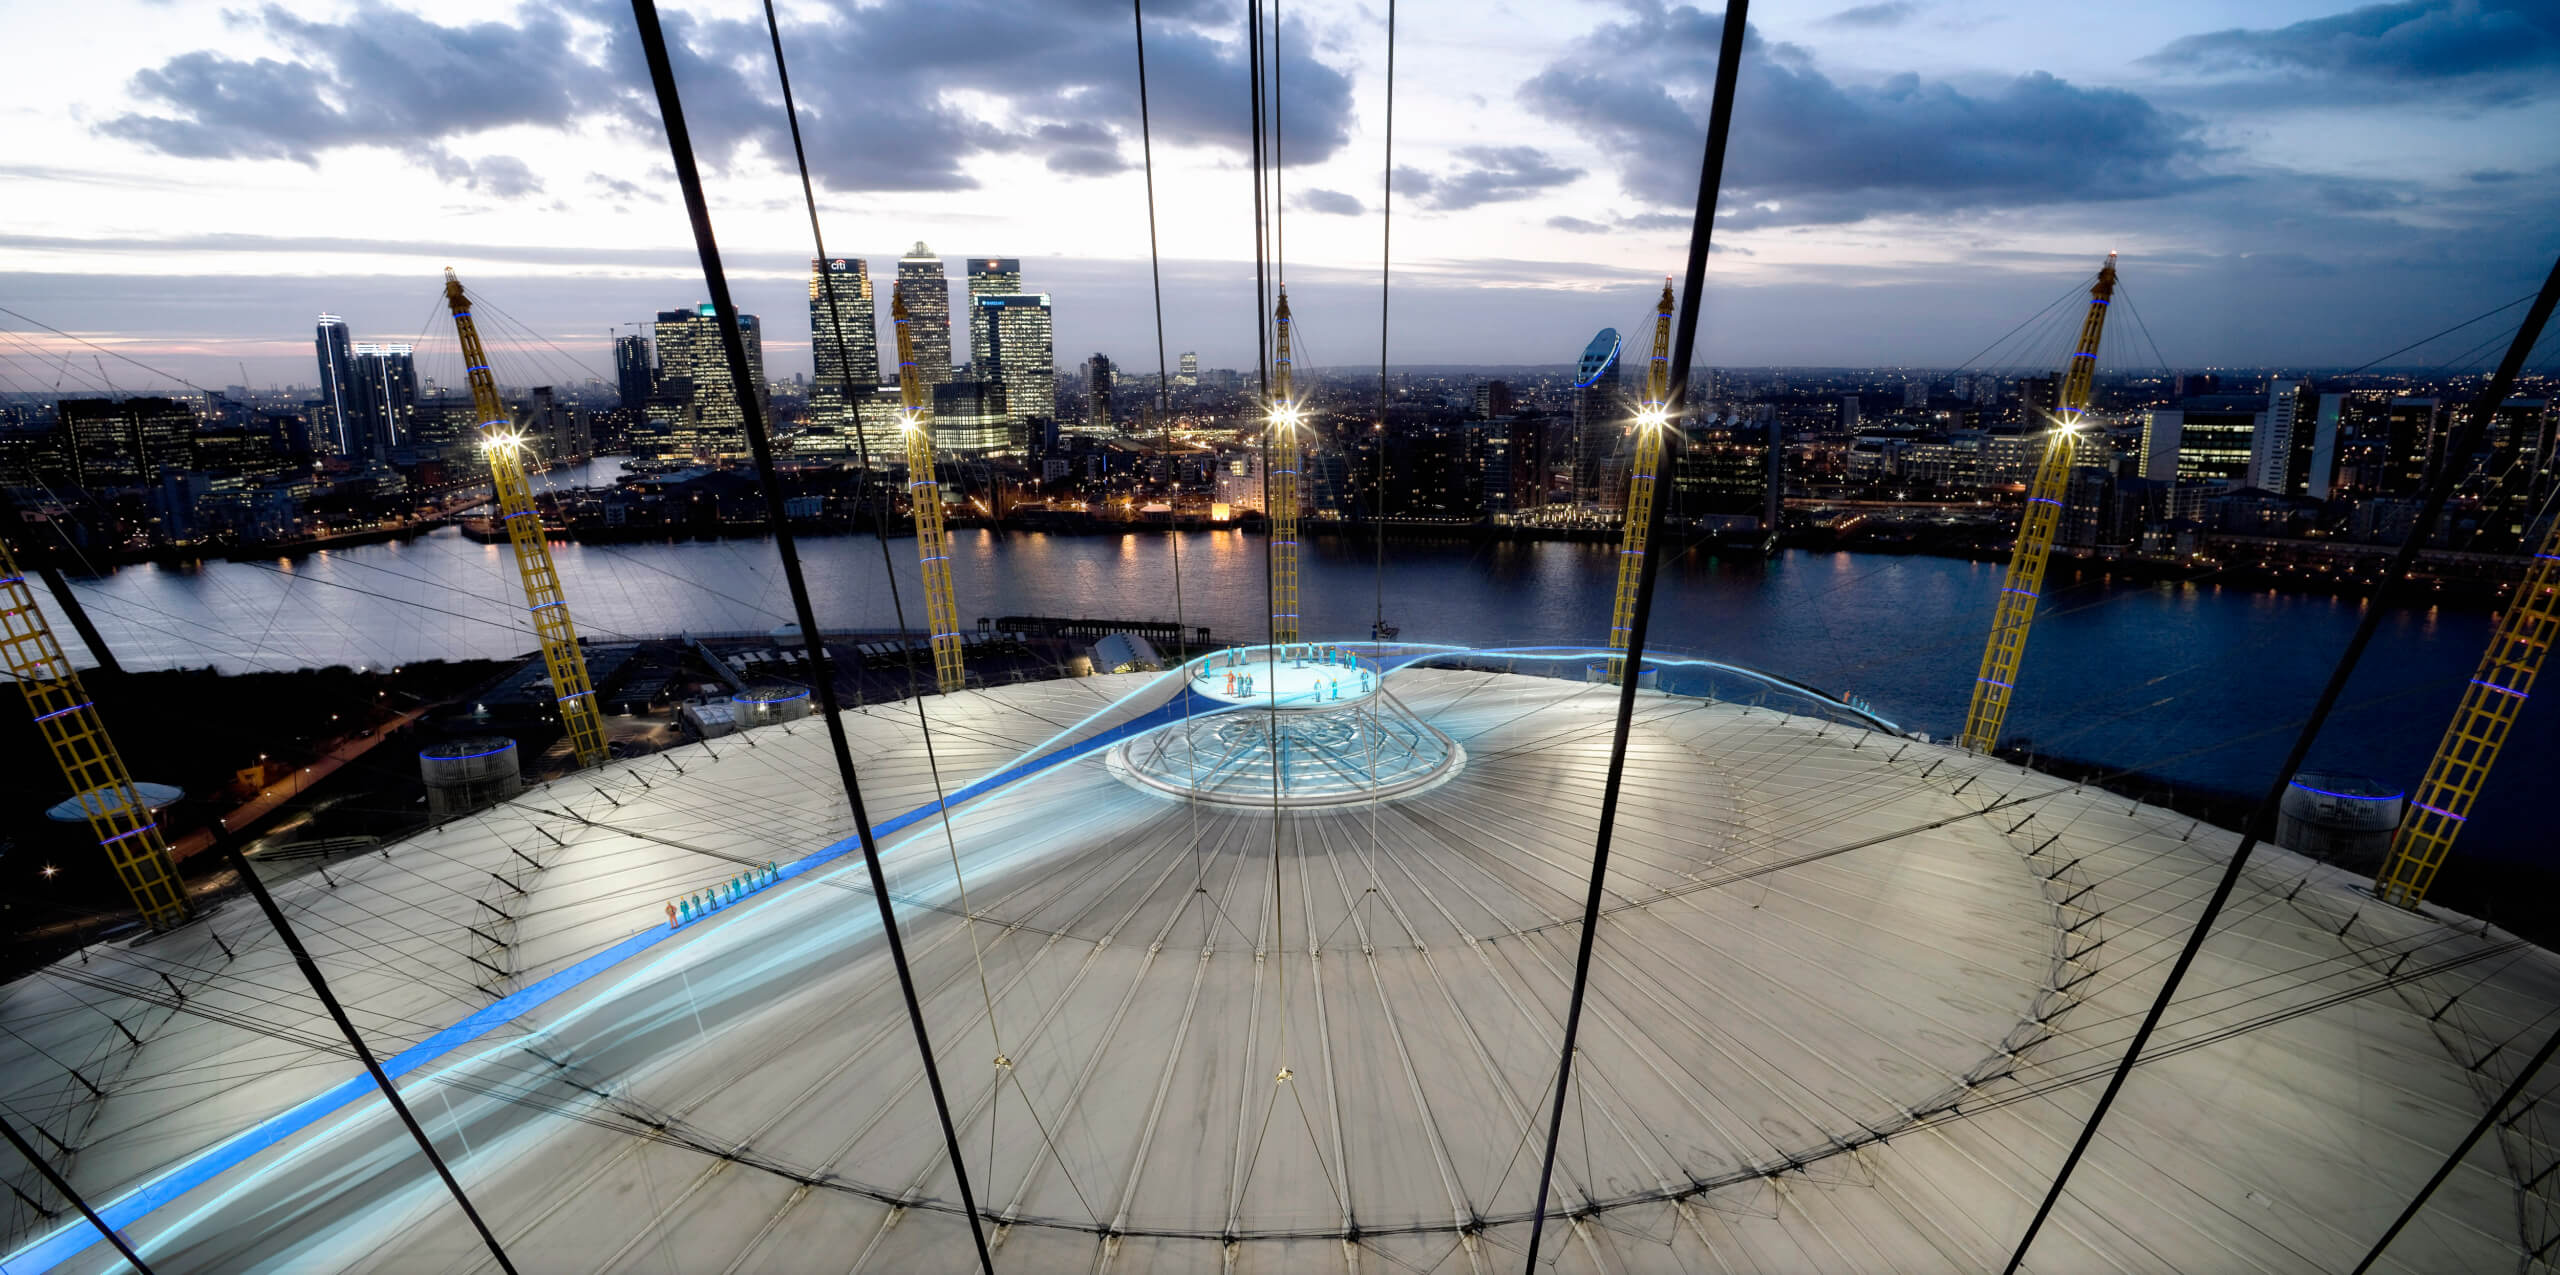 Top 5: Simply Sensational Father's Day Ideas in London, Father's Day Ideas in London,greenwich, the 02, adrenaline, aqua shard, grooming, shaving, london, what's on, events, top, expensive, high-end, cool, food, foodie, steak, wet shave, barber, up at the 02, climbing, wall climbing, rock climbing, outdoor, activity, adventure, sports